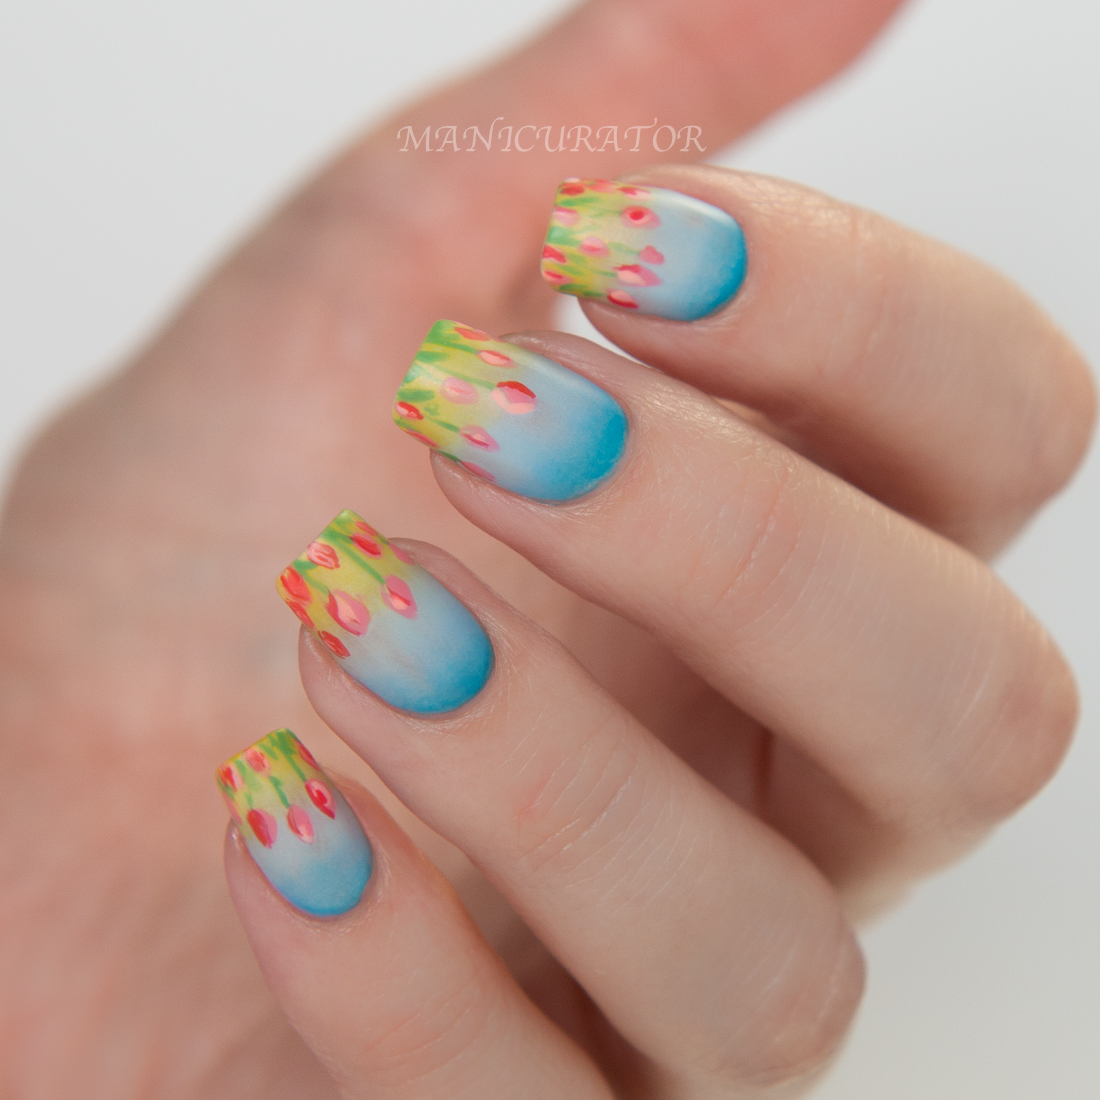 China-Glaze-Road-Trip-Freehand-Tulip-Nail-Art